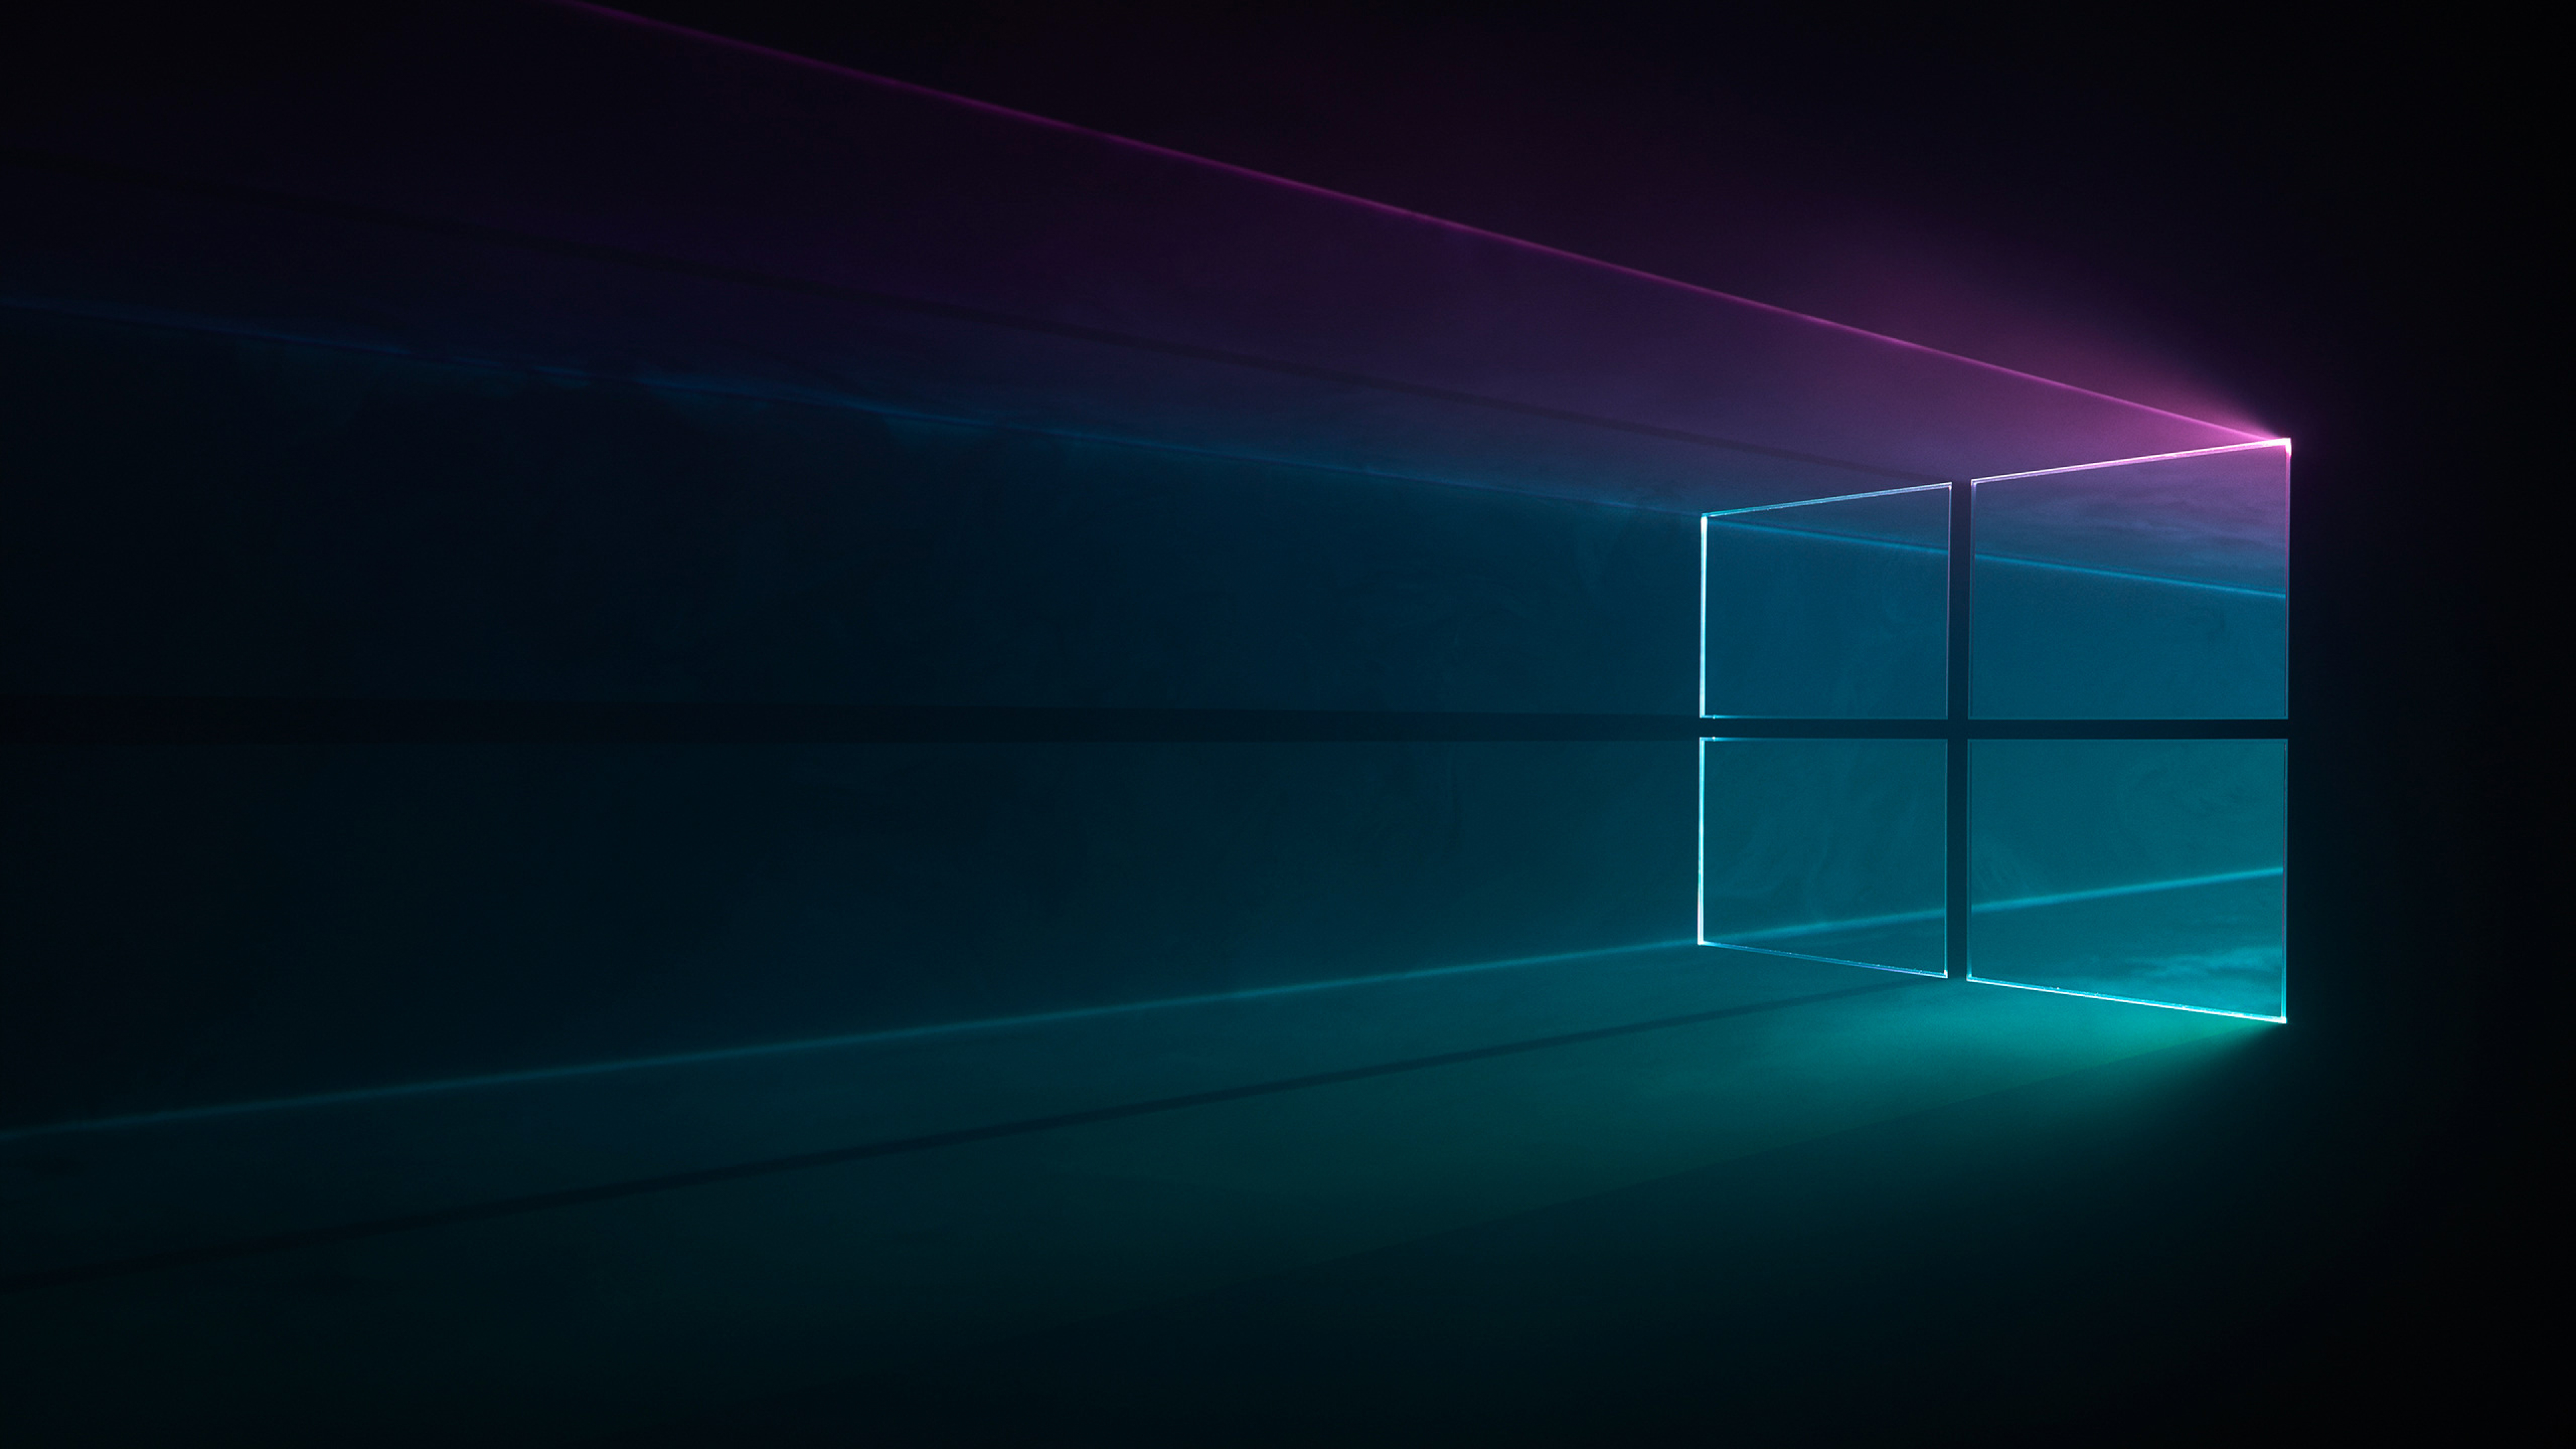 3840x2160 Windows 10 Dark 4k Wallpaper Hd Hi Tech 4k Wallpapers Images Photos And Background